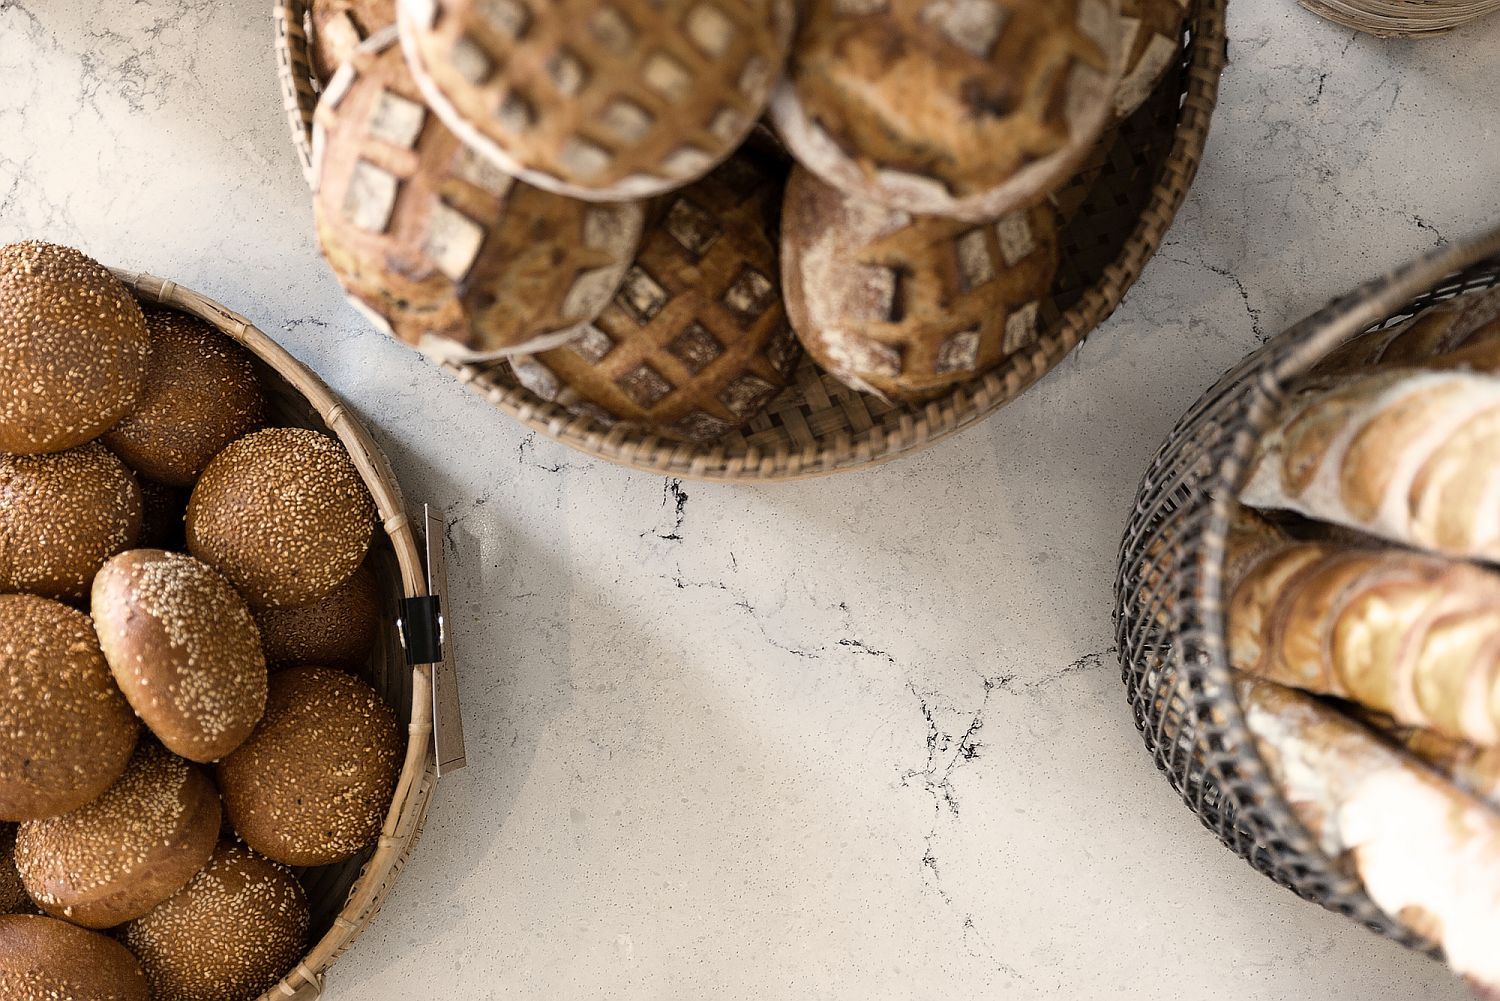 Closer-look-at-the-marble-countertops-inside-the-bakery-with-modern-industrial-touches